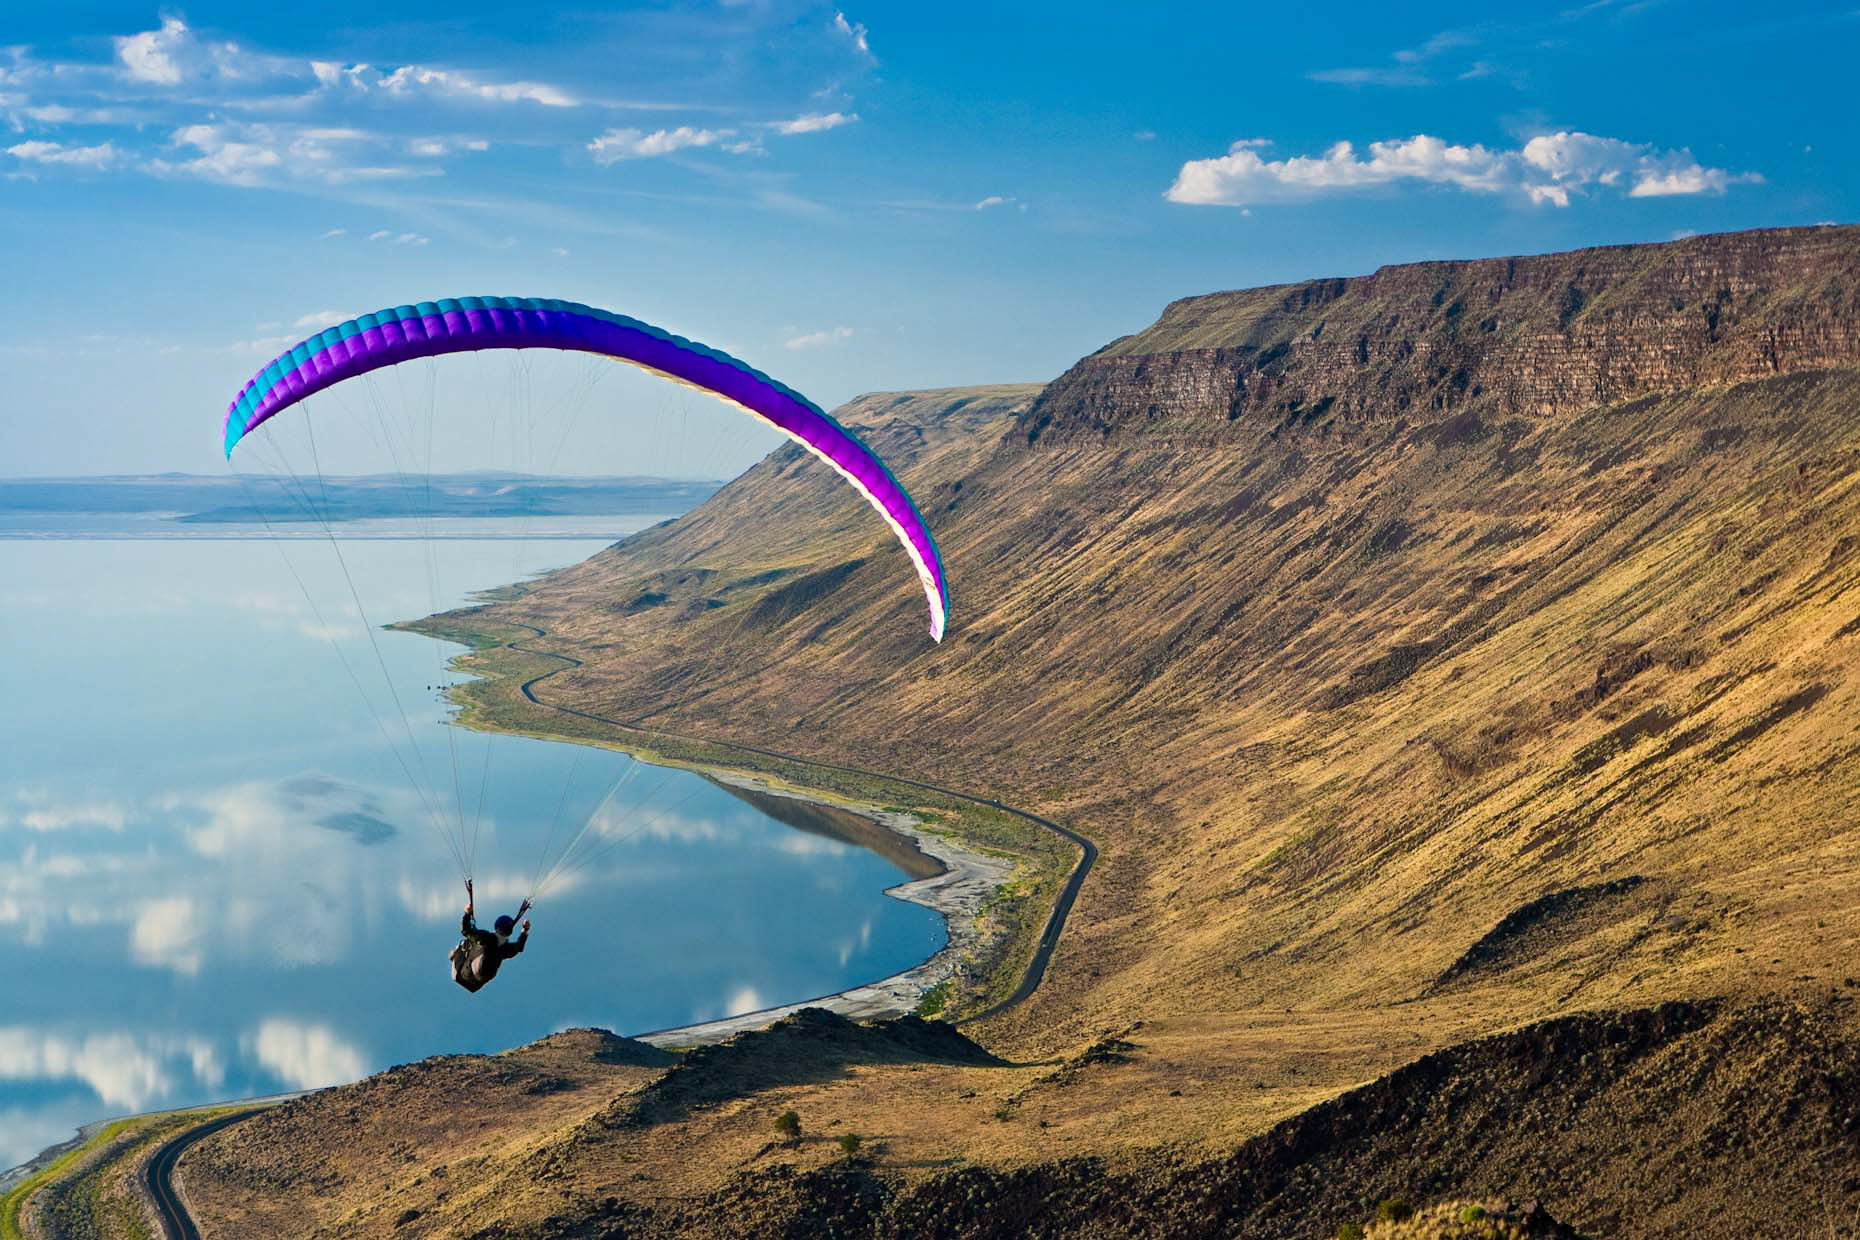 Paragliding and Air Sports | Action Sports Photography